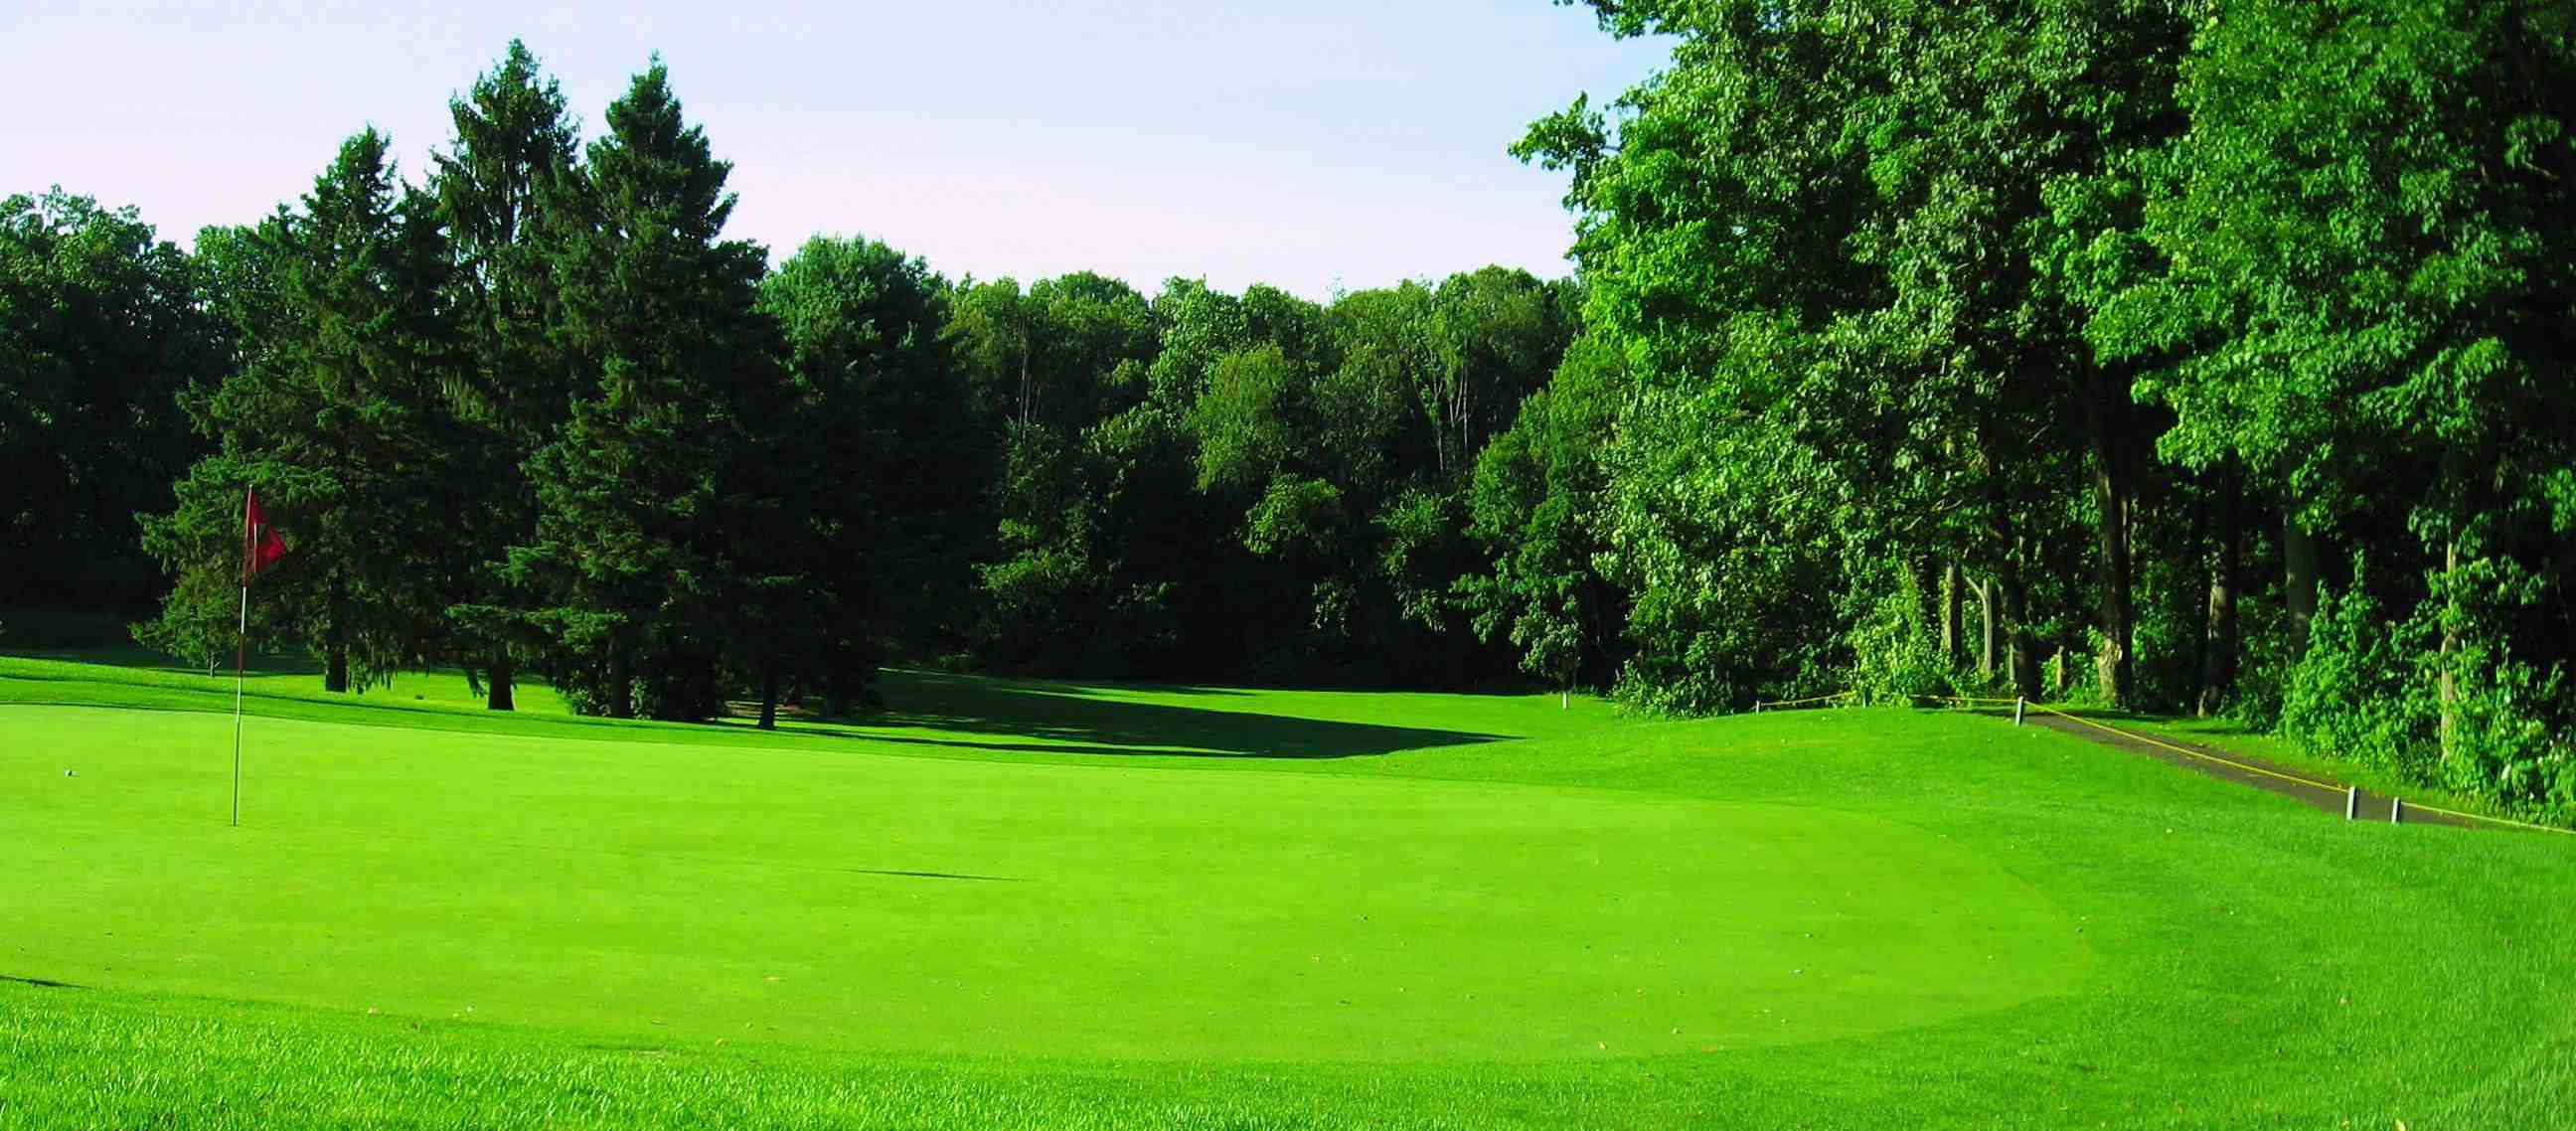 Golf Course Green 1593 Hd Wallpapers in Sports   Imagescicom 2592x1138